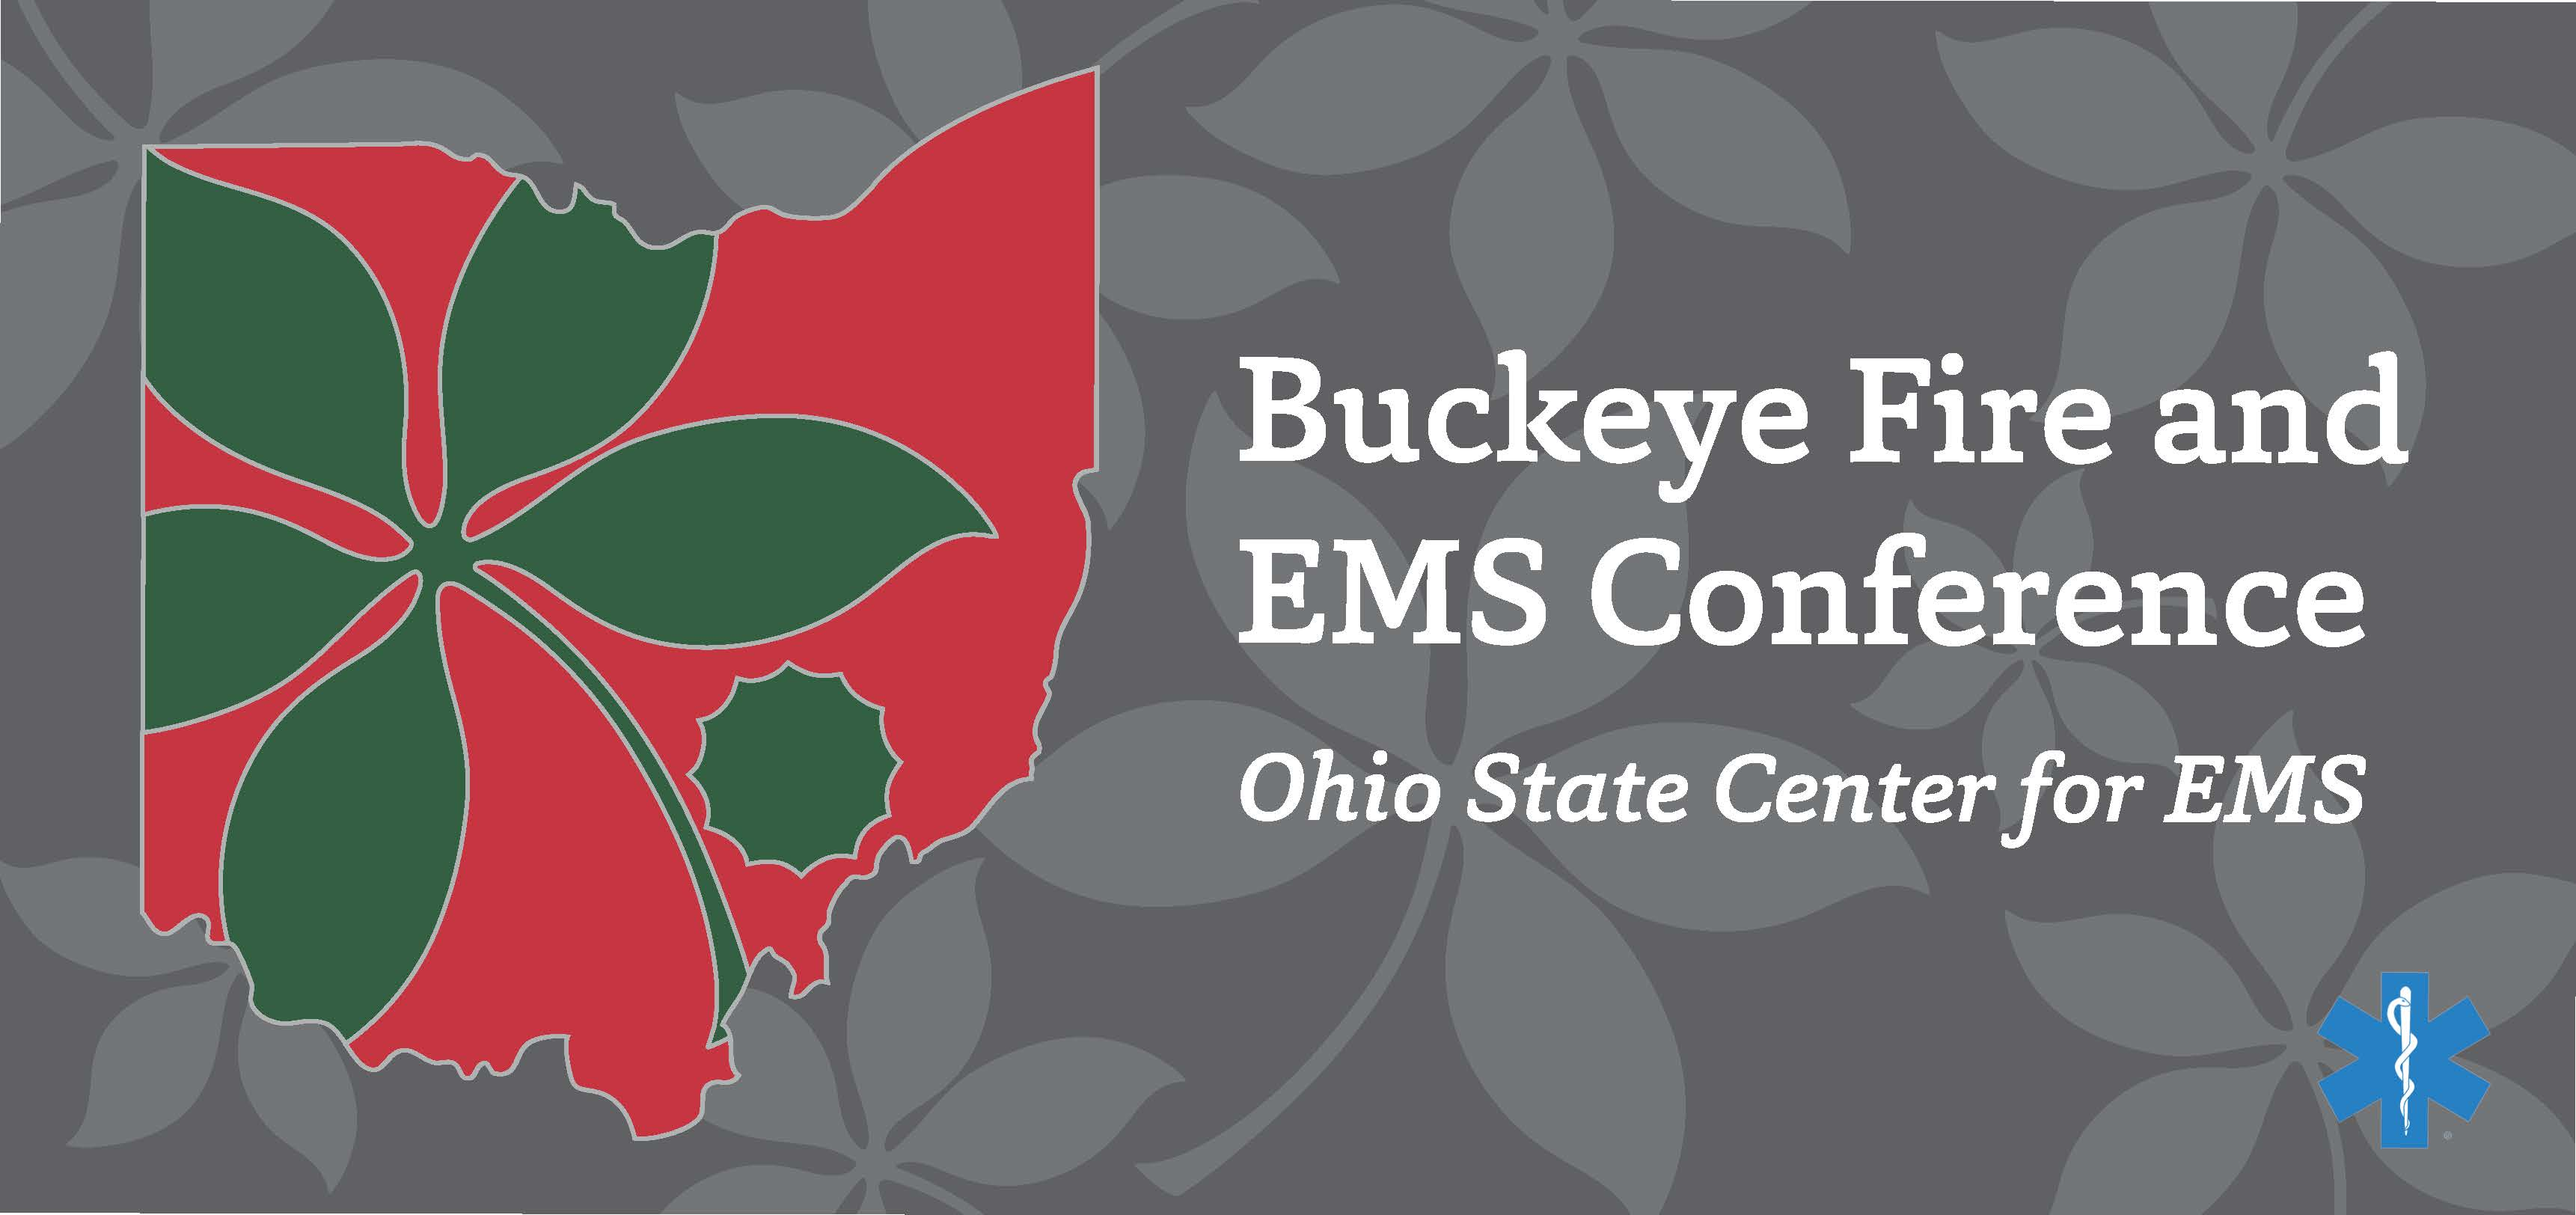 The Buckeye Fire and EMS Conference 2017